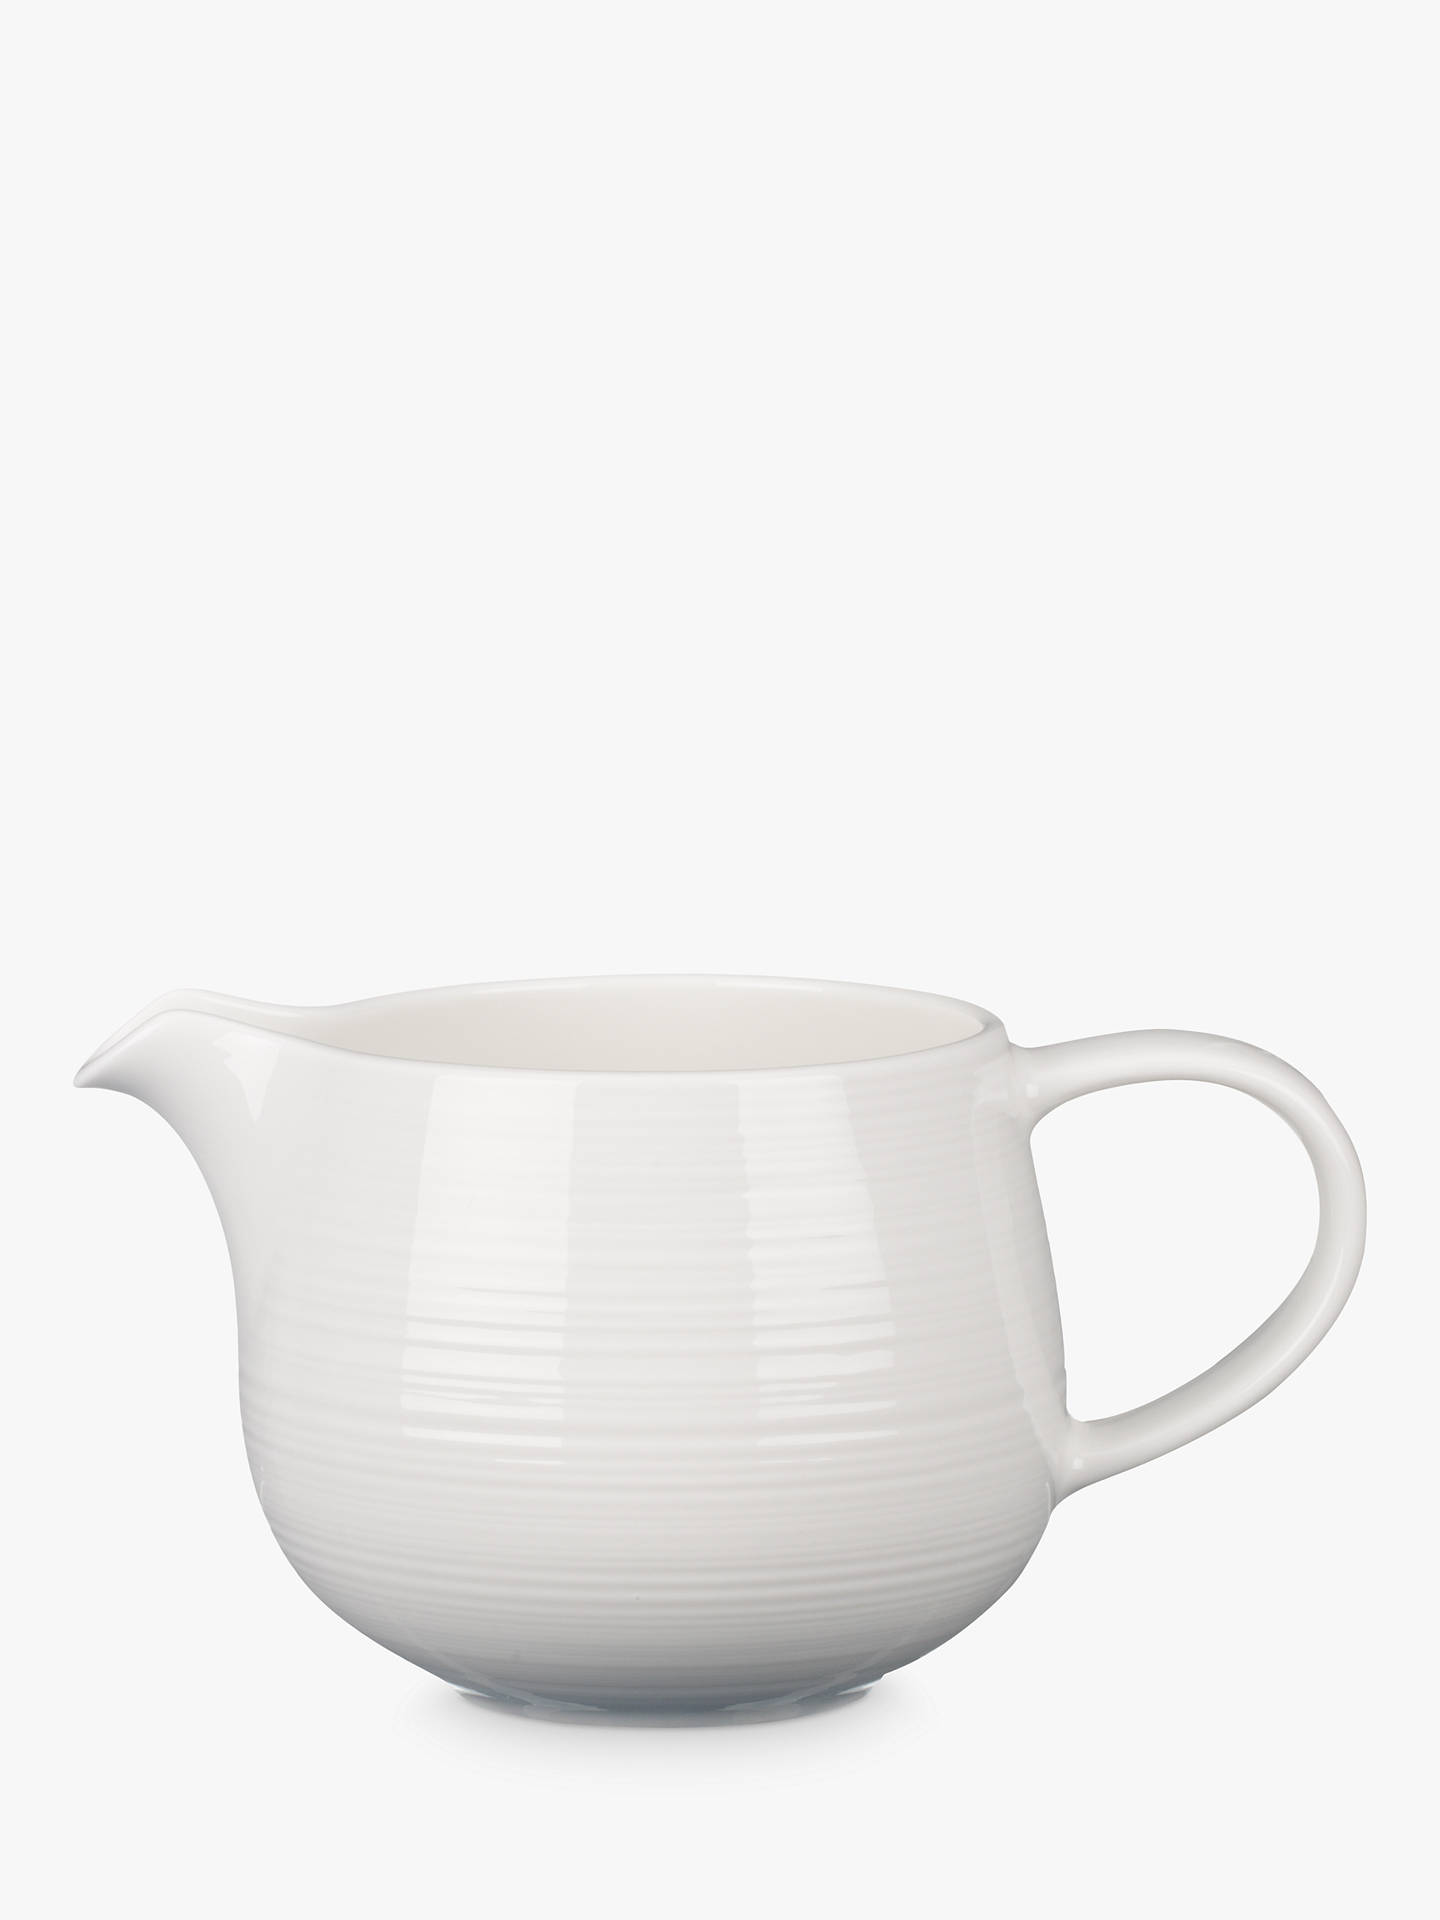 Buy Croft Collection Luna Sauce Boat, Natural Online at johnlewis.com